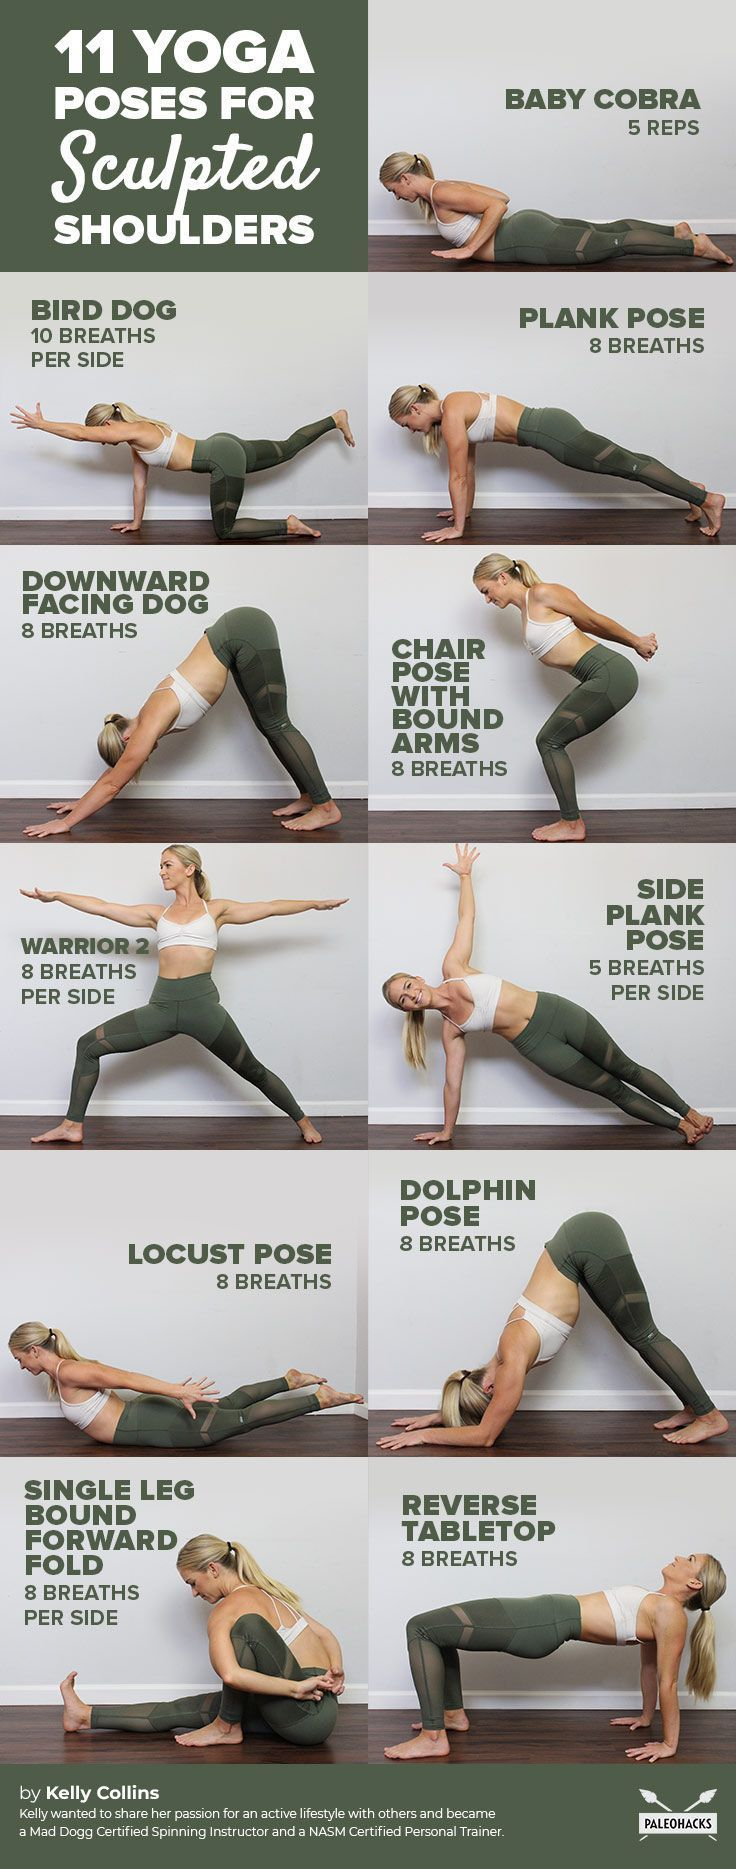 11 Easy Yoga Poses for Sculpted Shoulders & Better Mobility – Shannan Hamilton-Russ